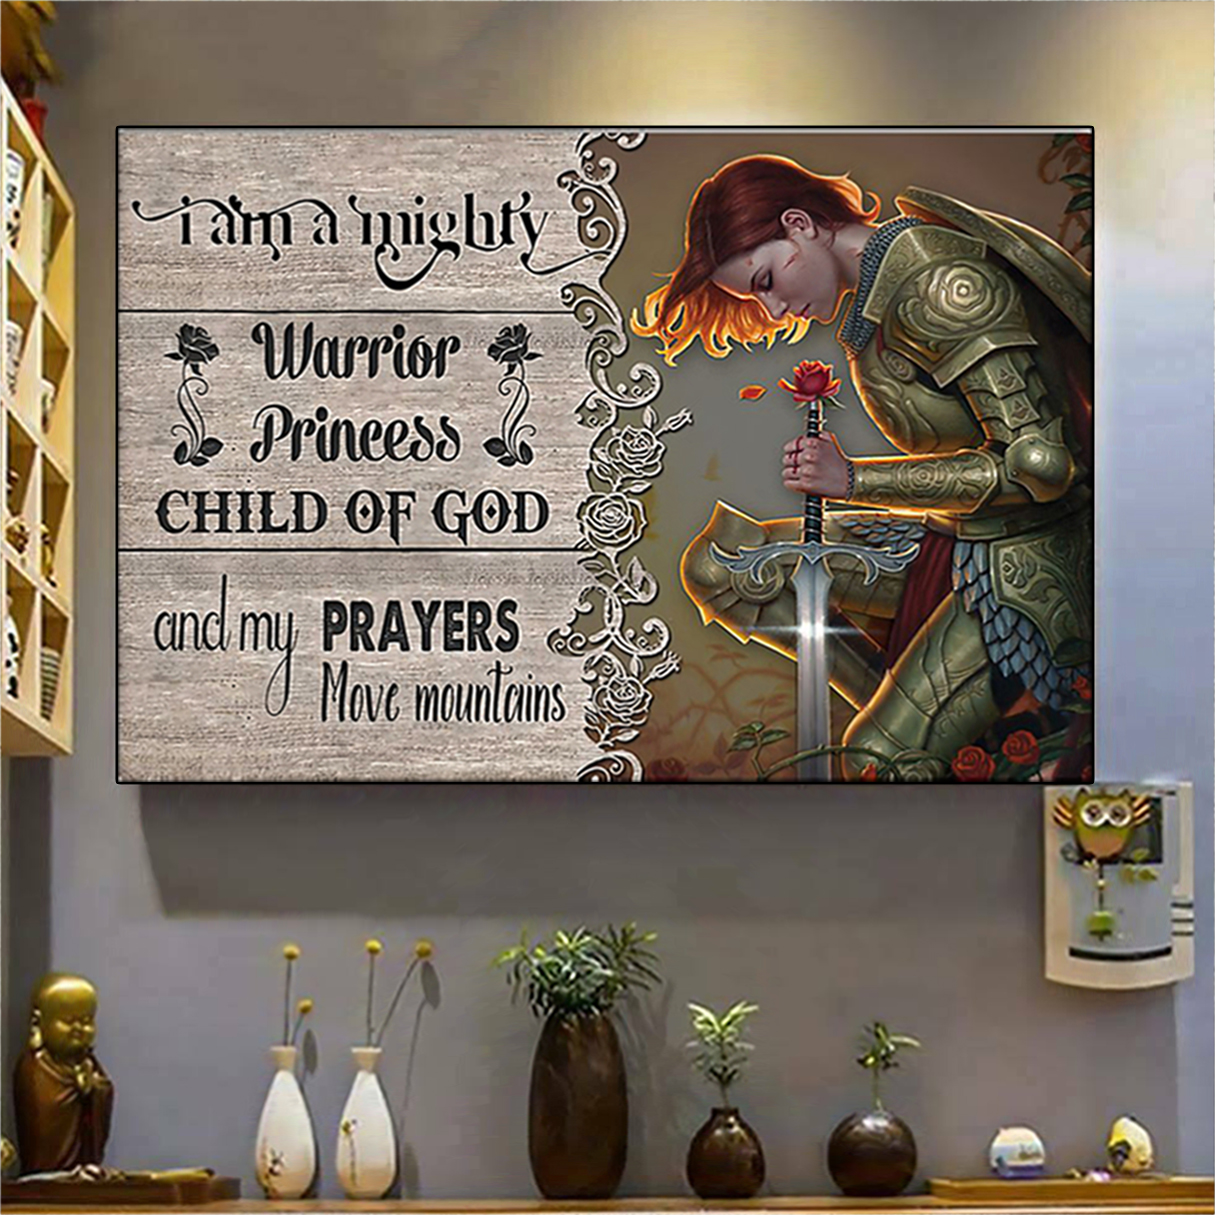 I am a mighty warrior princess child of god poster A1